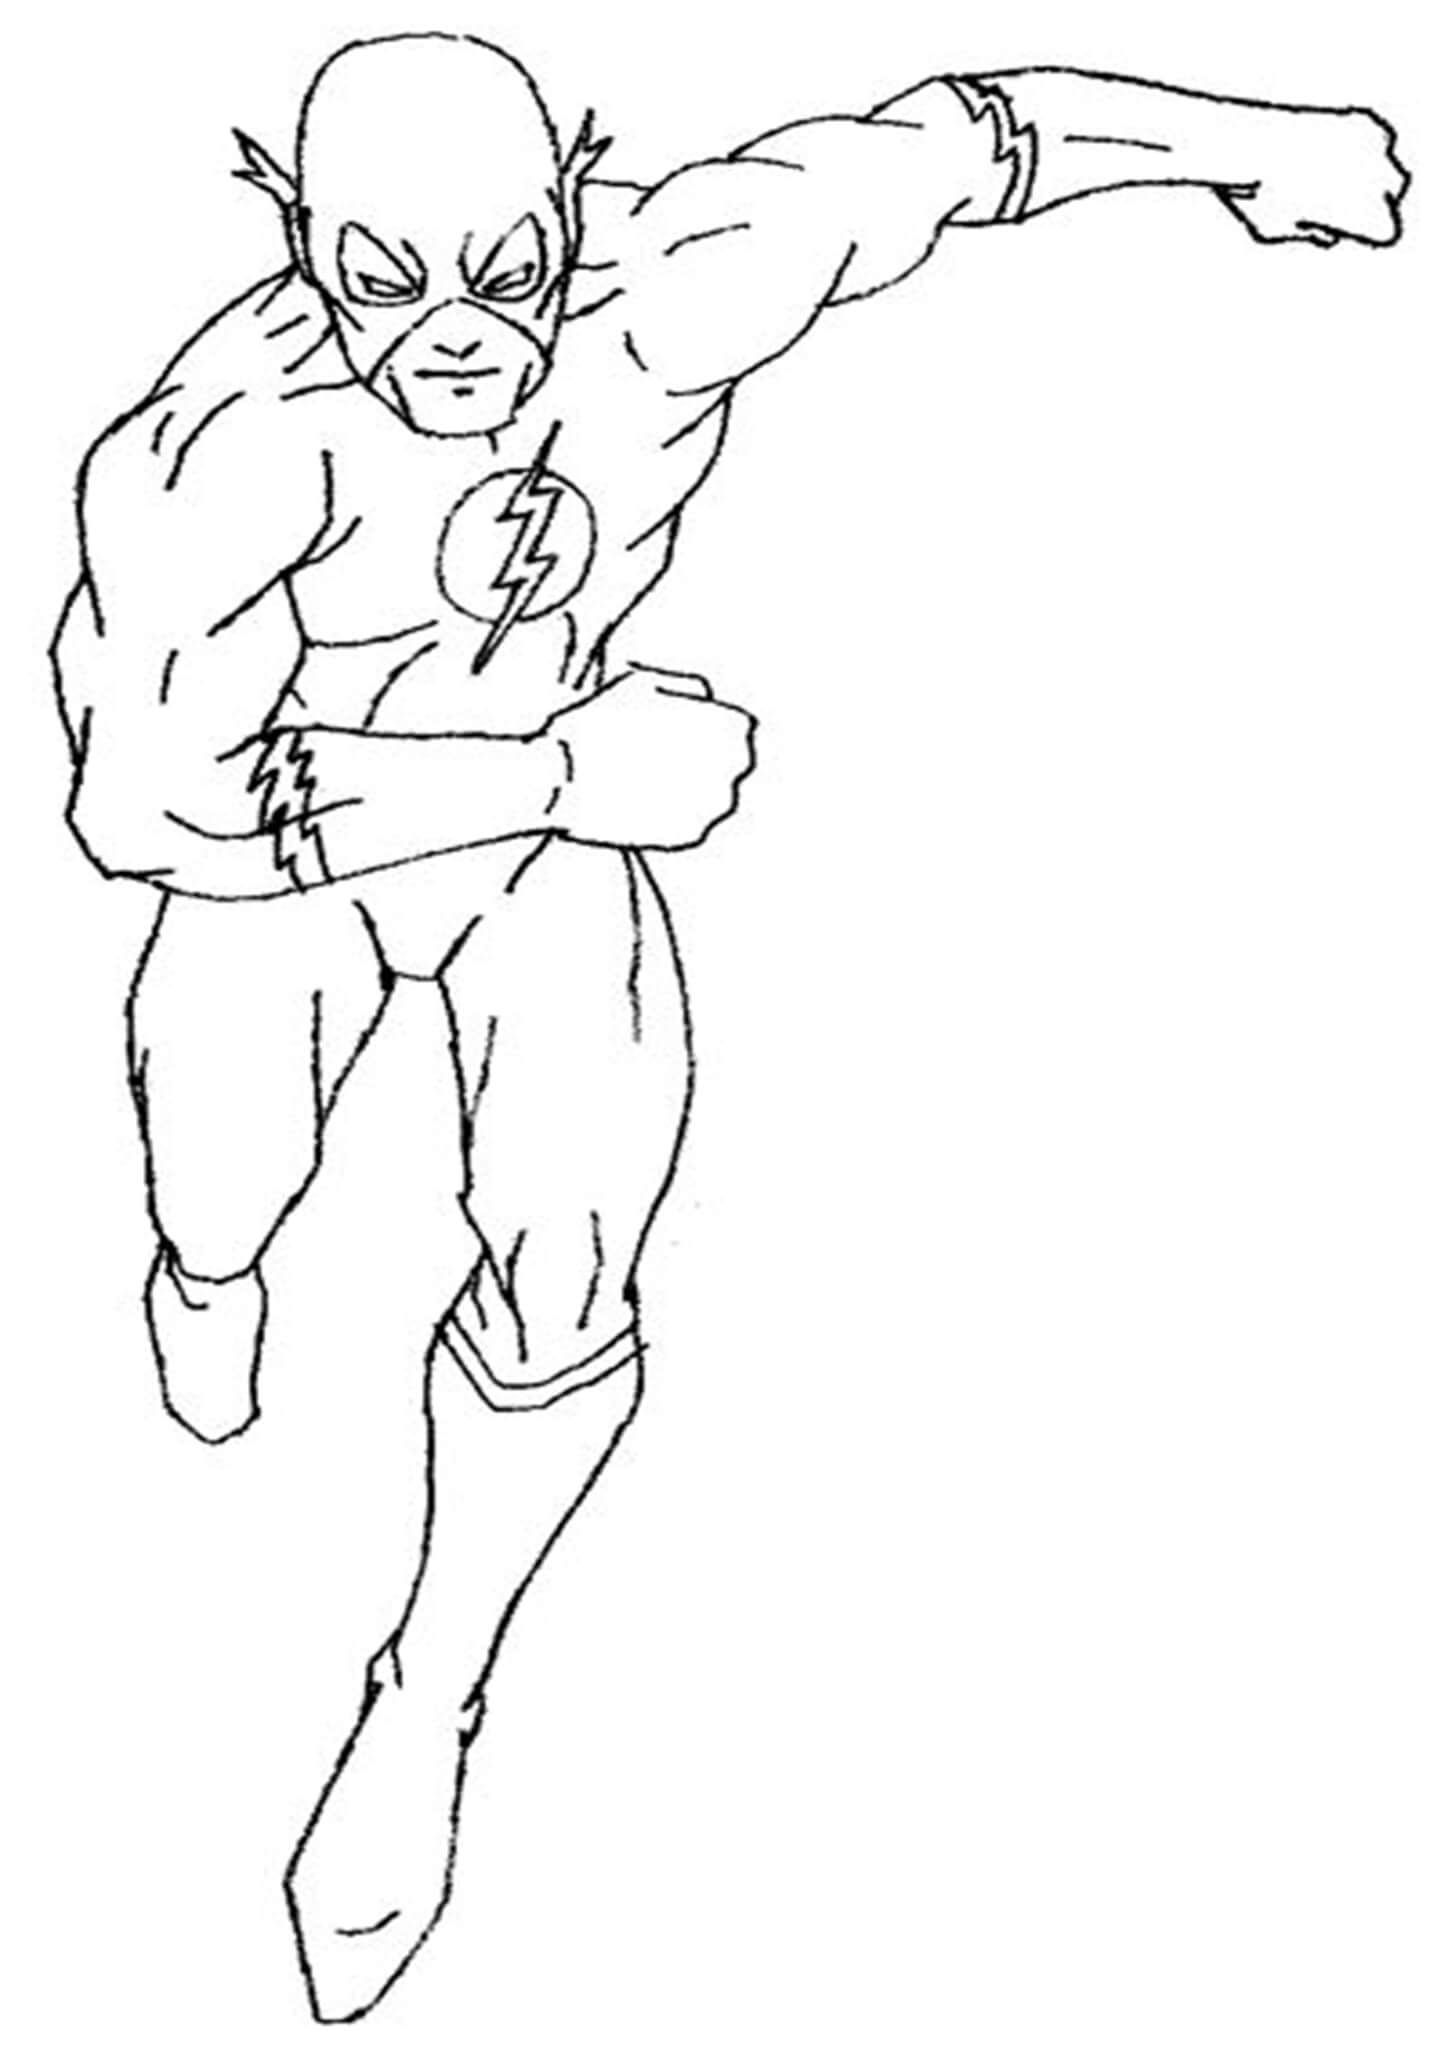 Free Easy To Print Flash Coloring Pages Vingadores Para Colorir Desenhos Para Colorir Desenhos Pra Colorir